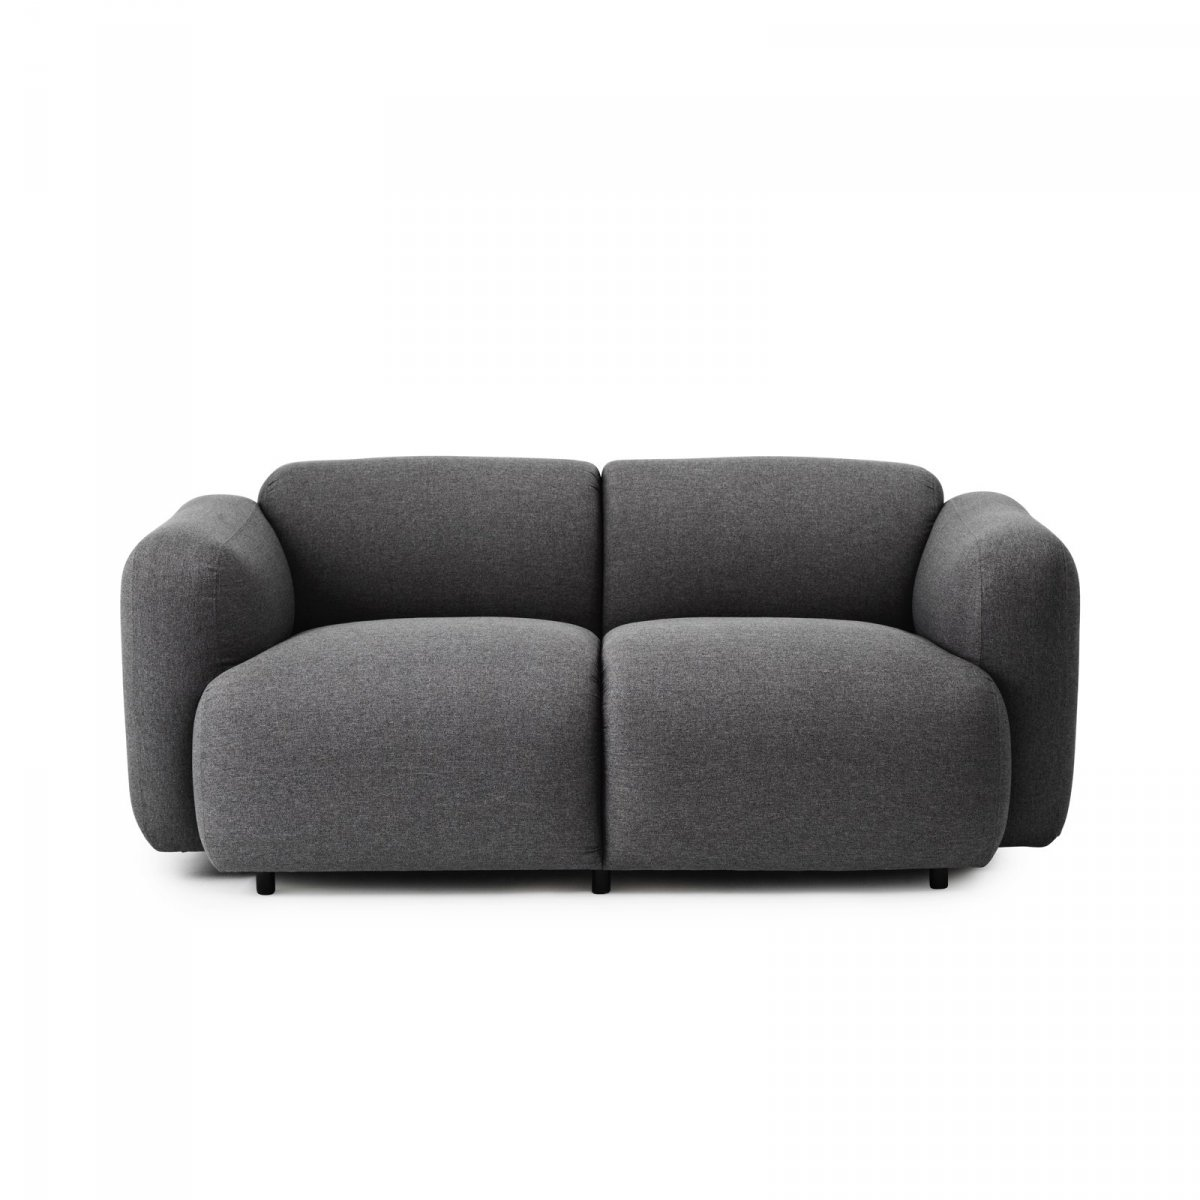 Swell Sofa 2 Seater.